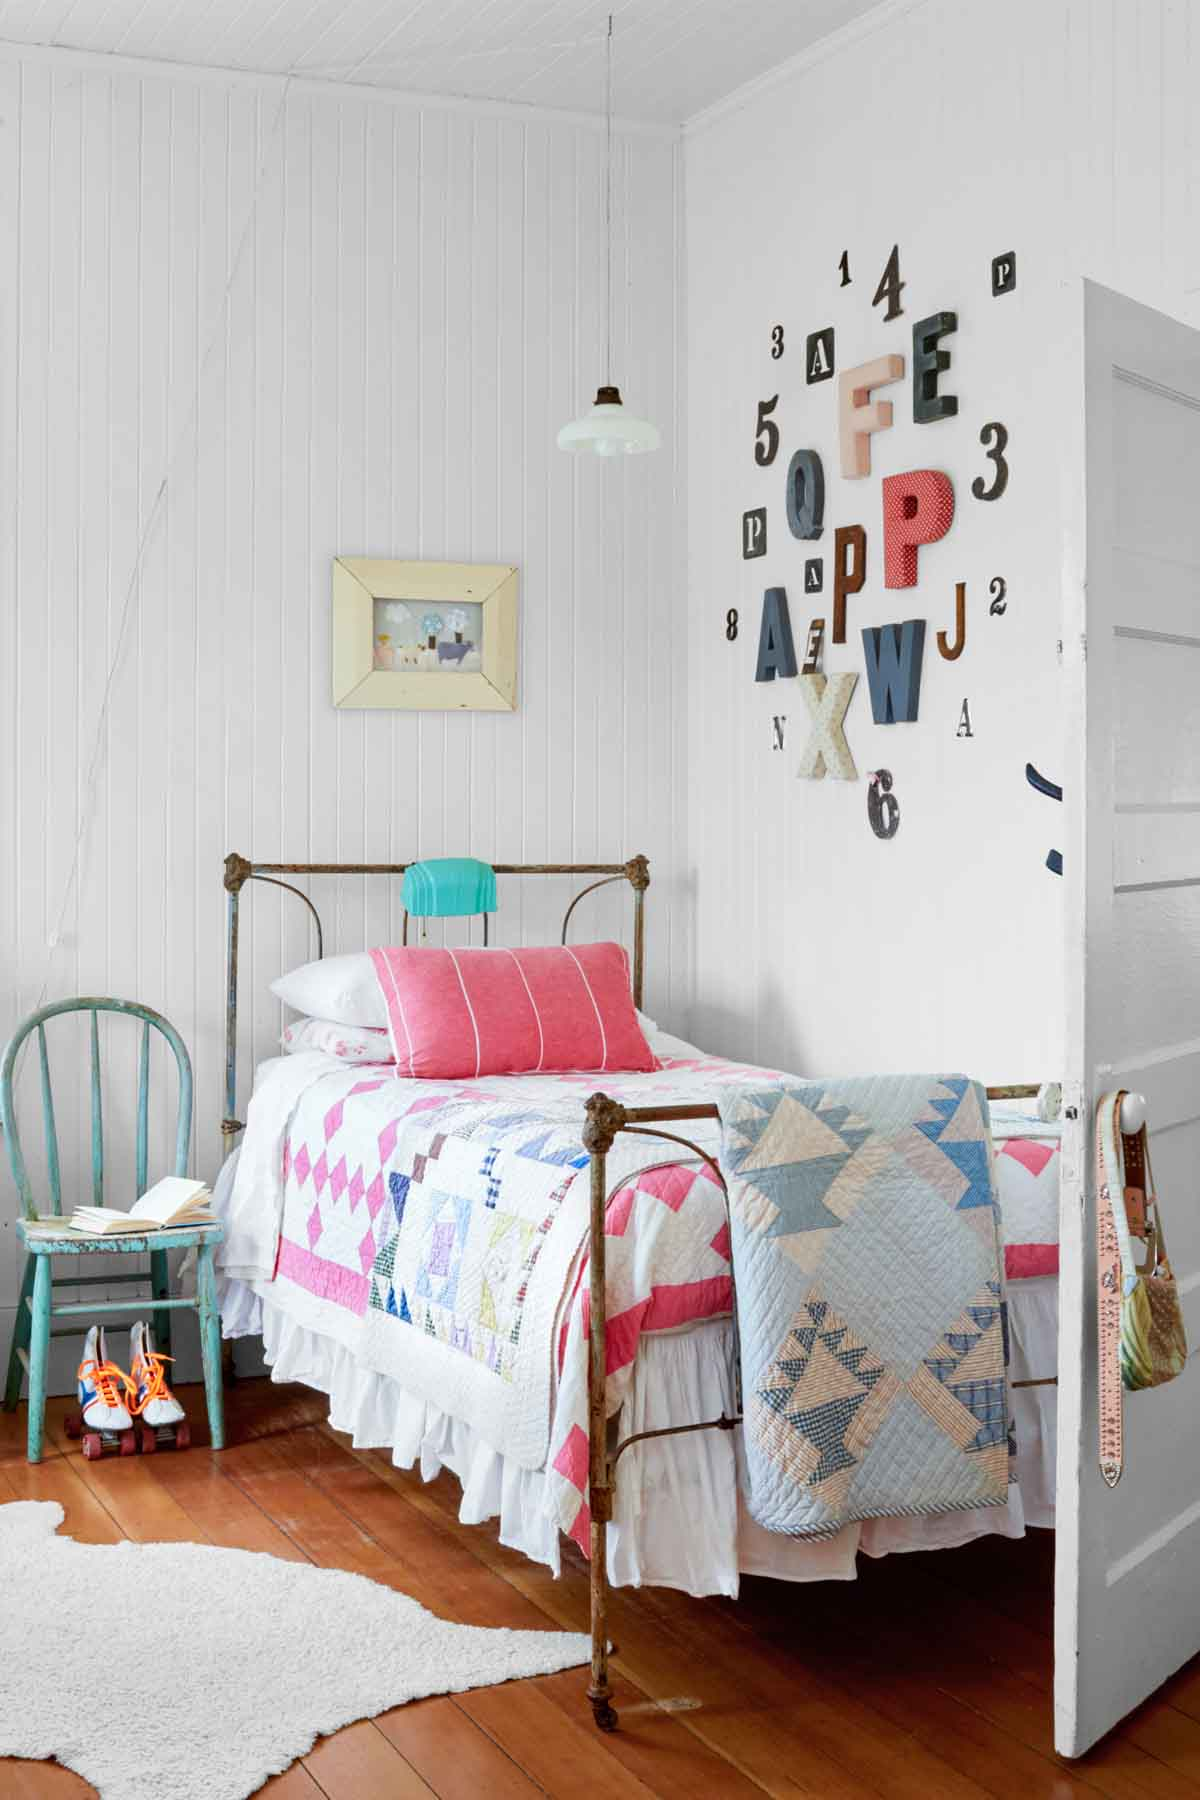 12 Fun Girl's Bedroom Decor Ideas - Cute Room Decorating ... on Decoration Room For Girl  id=39147